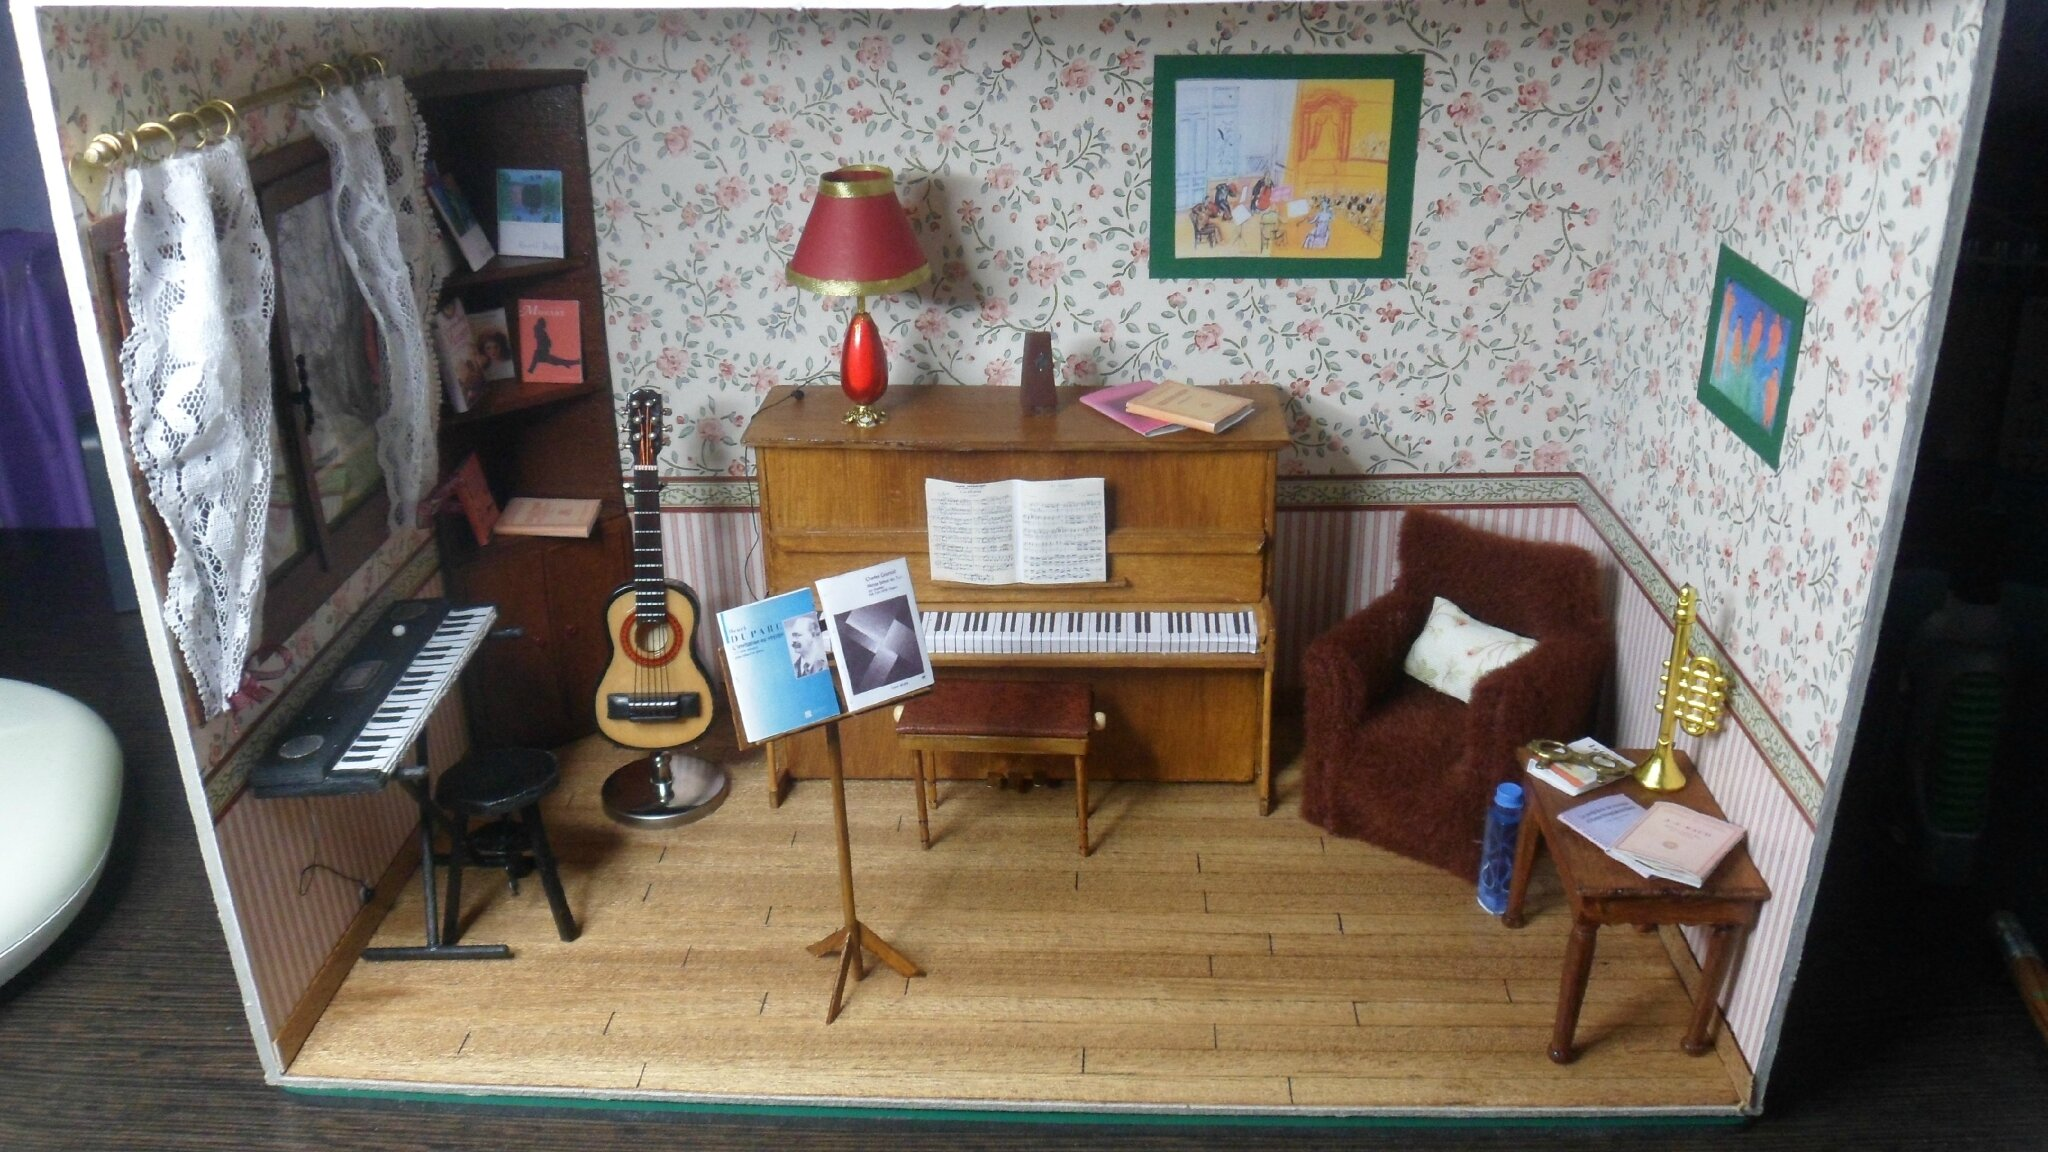 Le salon de musique photo de mes miniatures mes for Le salon de musique